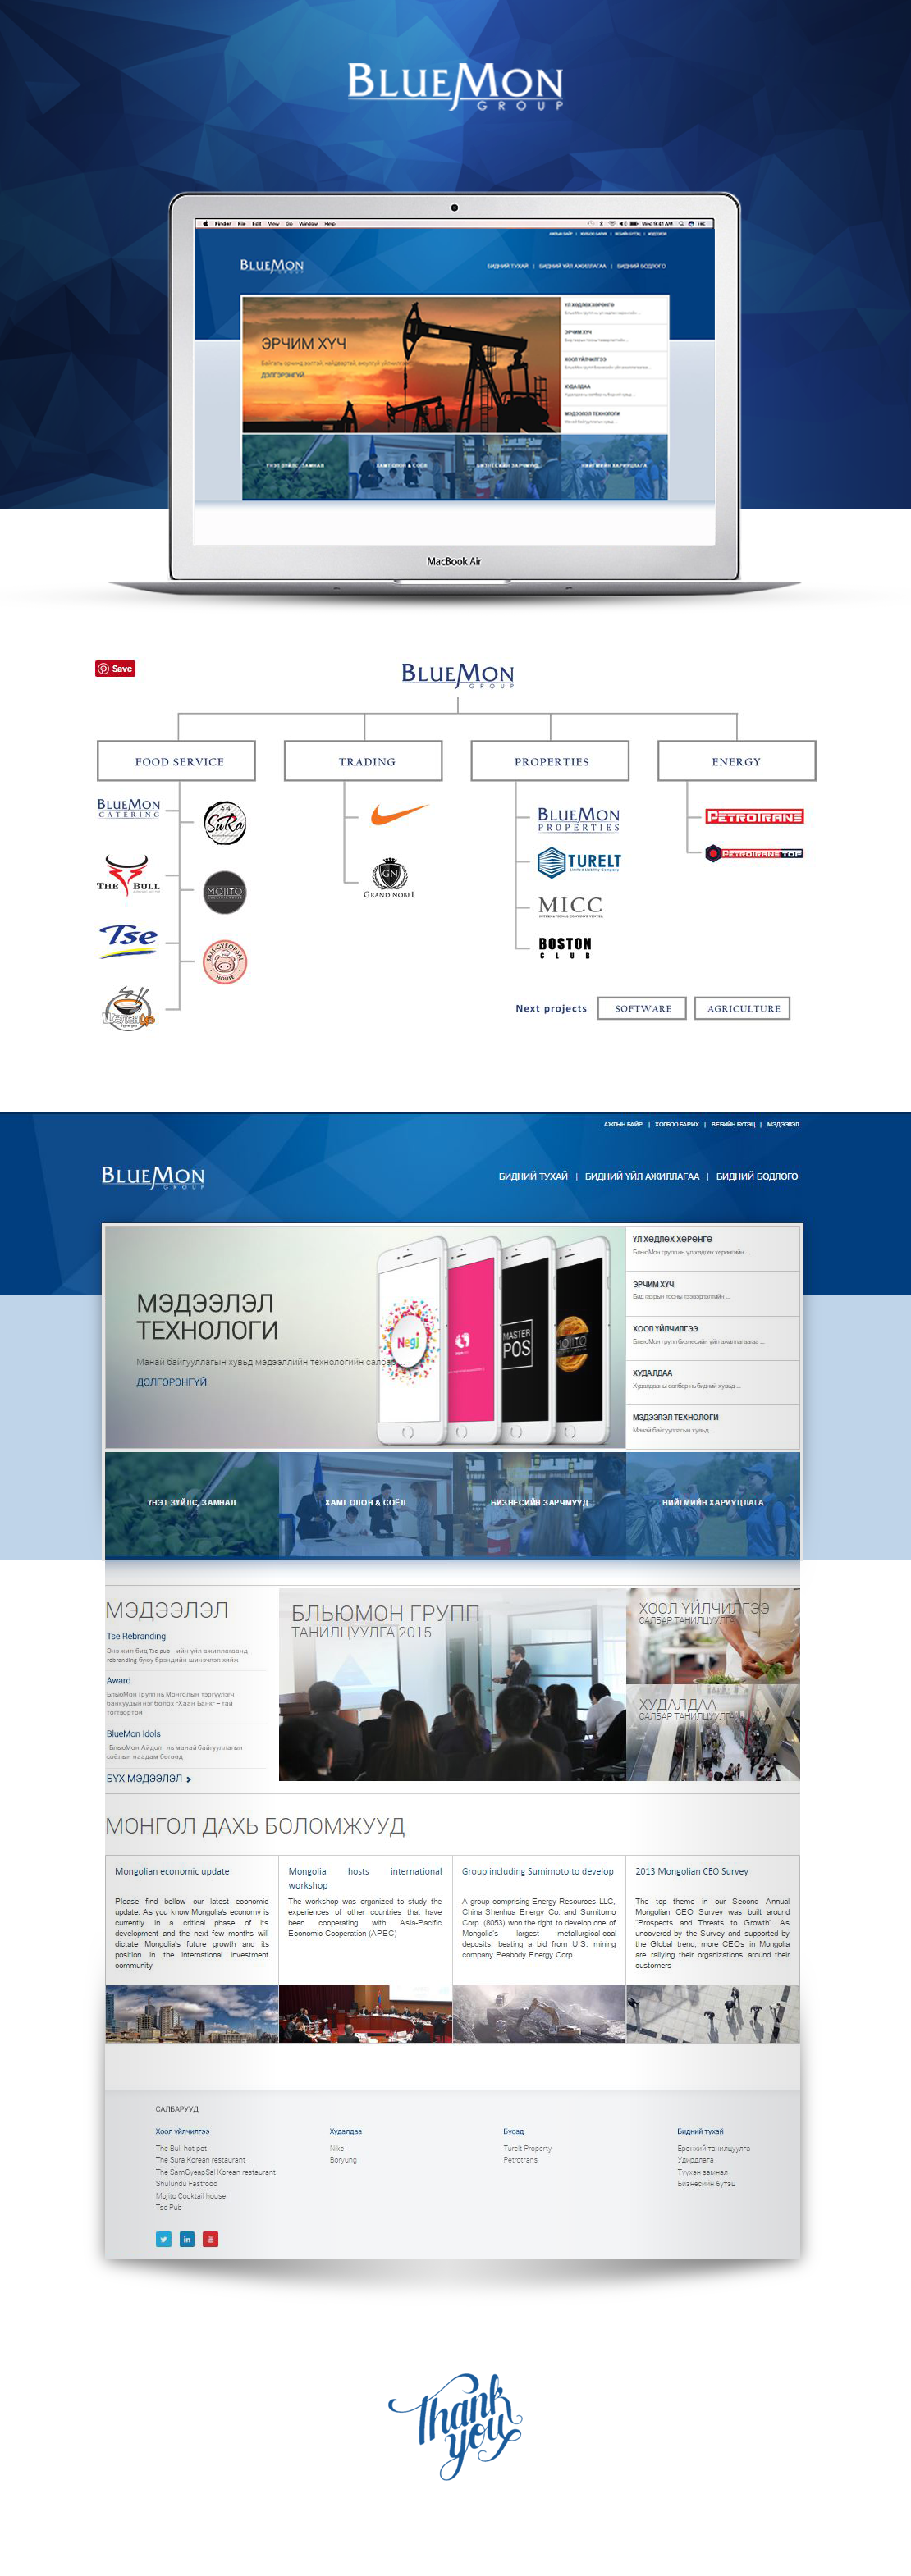 bluemon group web